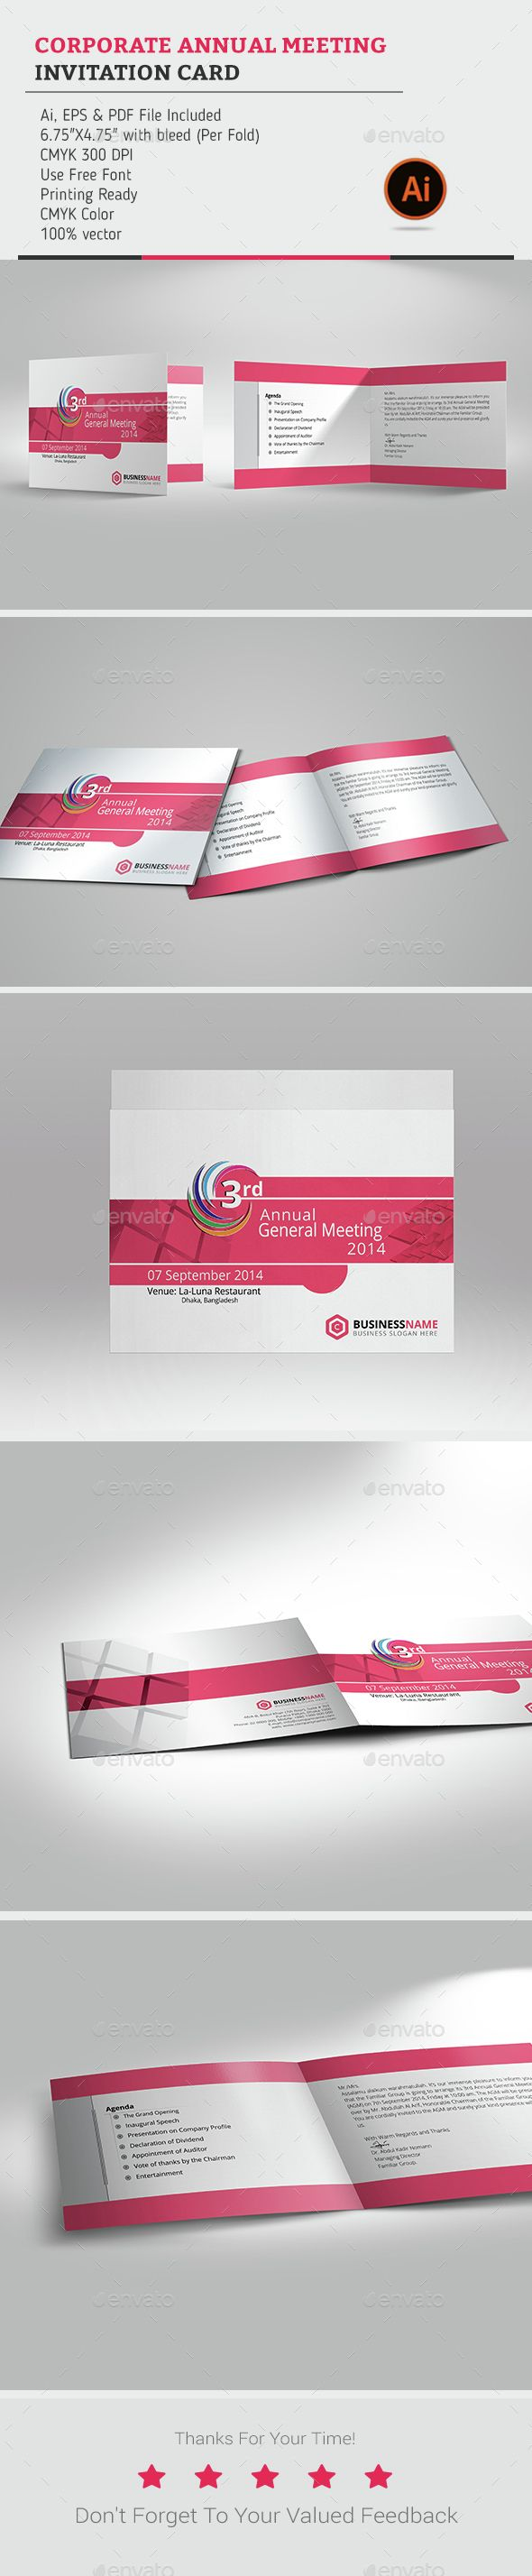 Corporate Annual Meeting invitation Card — Vector EPS #modern #print design • Available here → https://graphicriver.net/item/corporate-annual-meeting-invitation-card/7764201?ref=pxcr